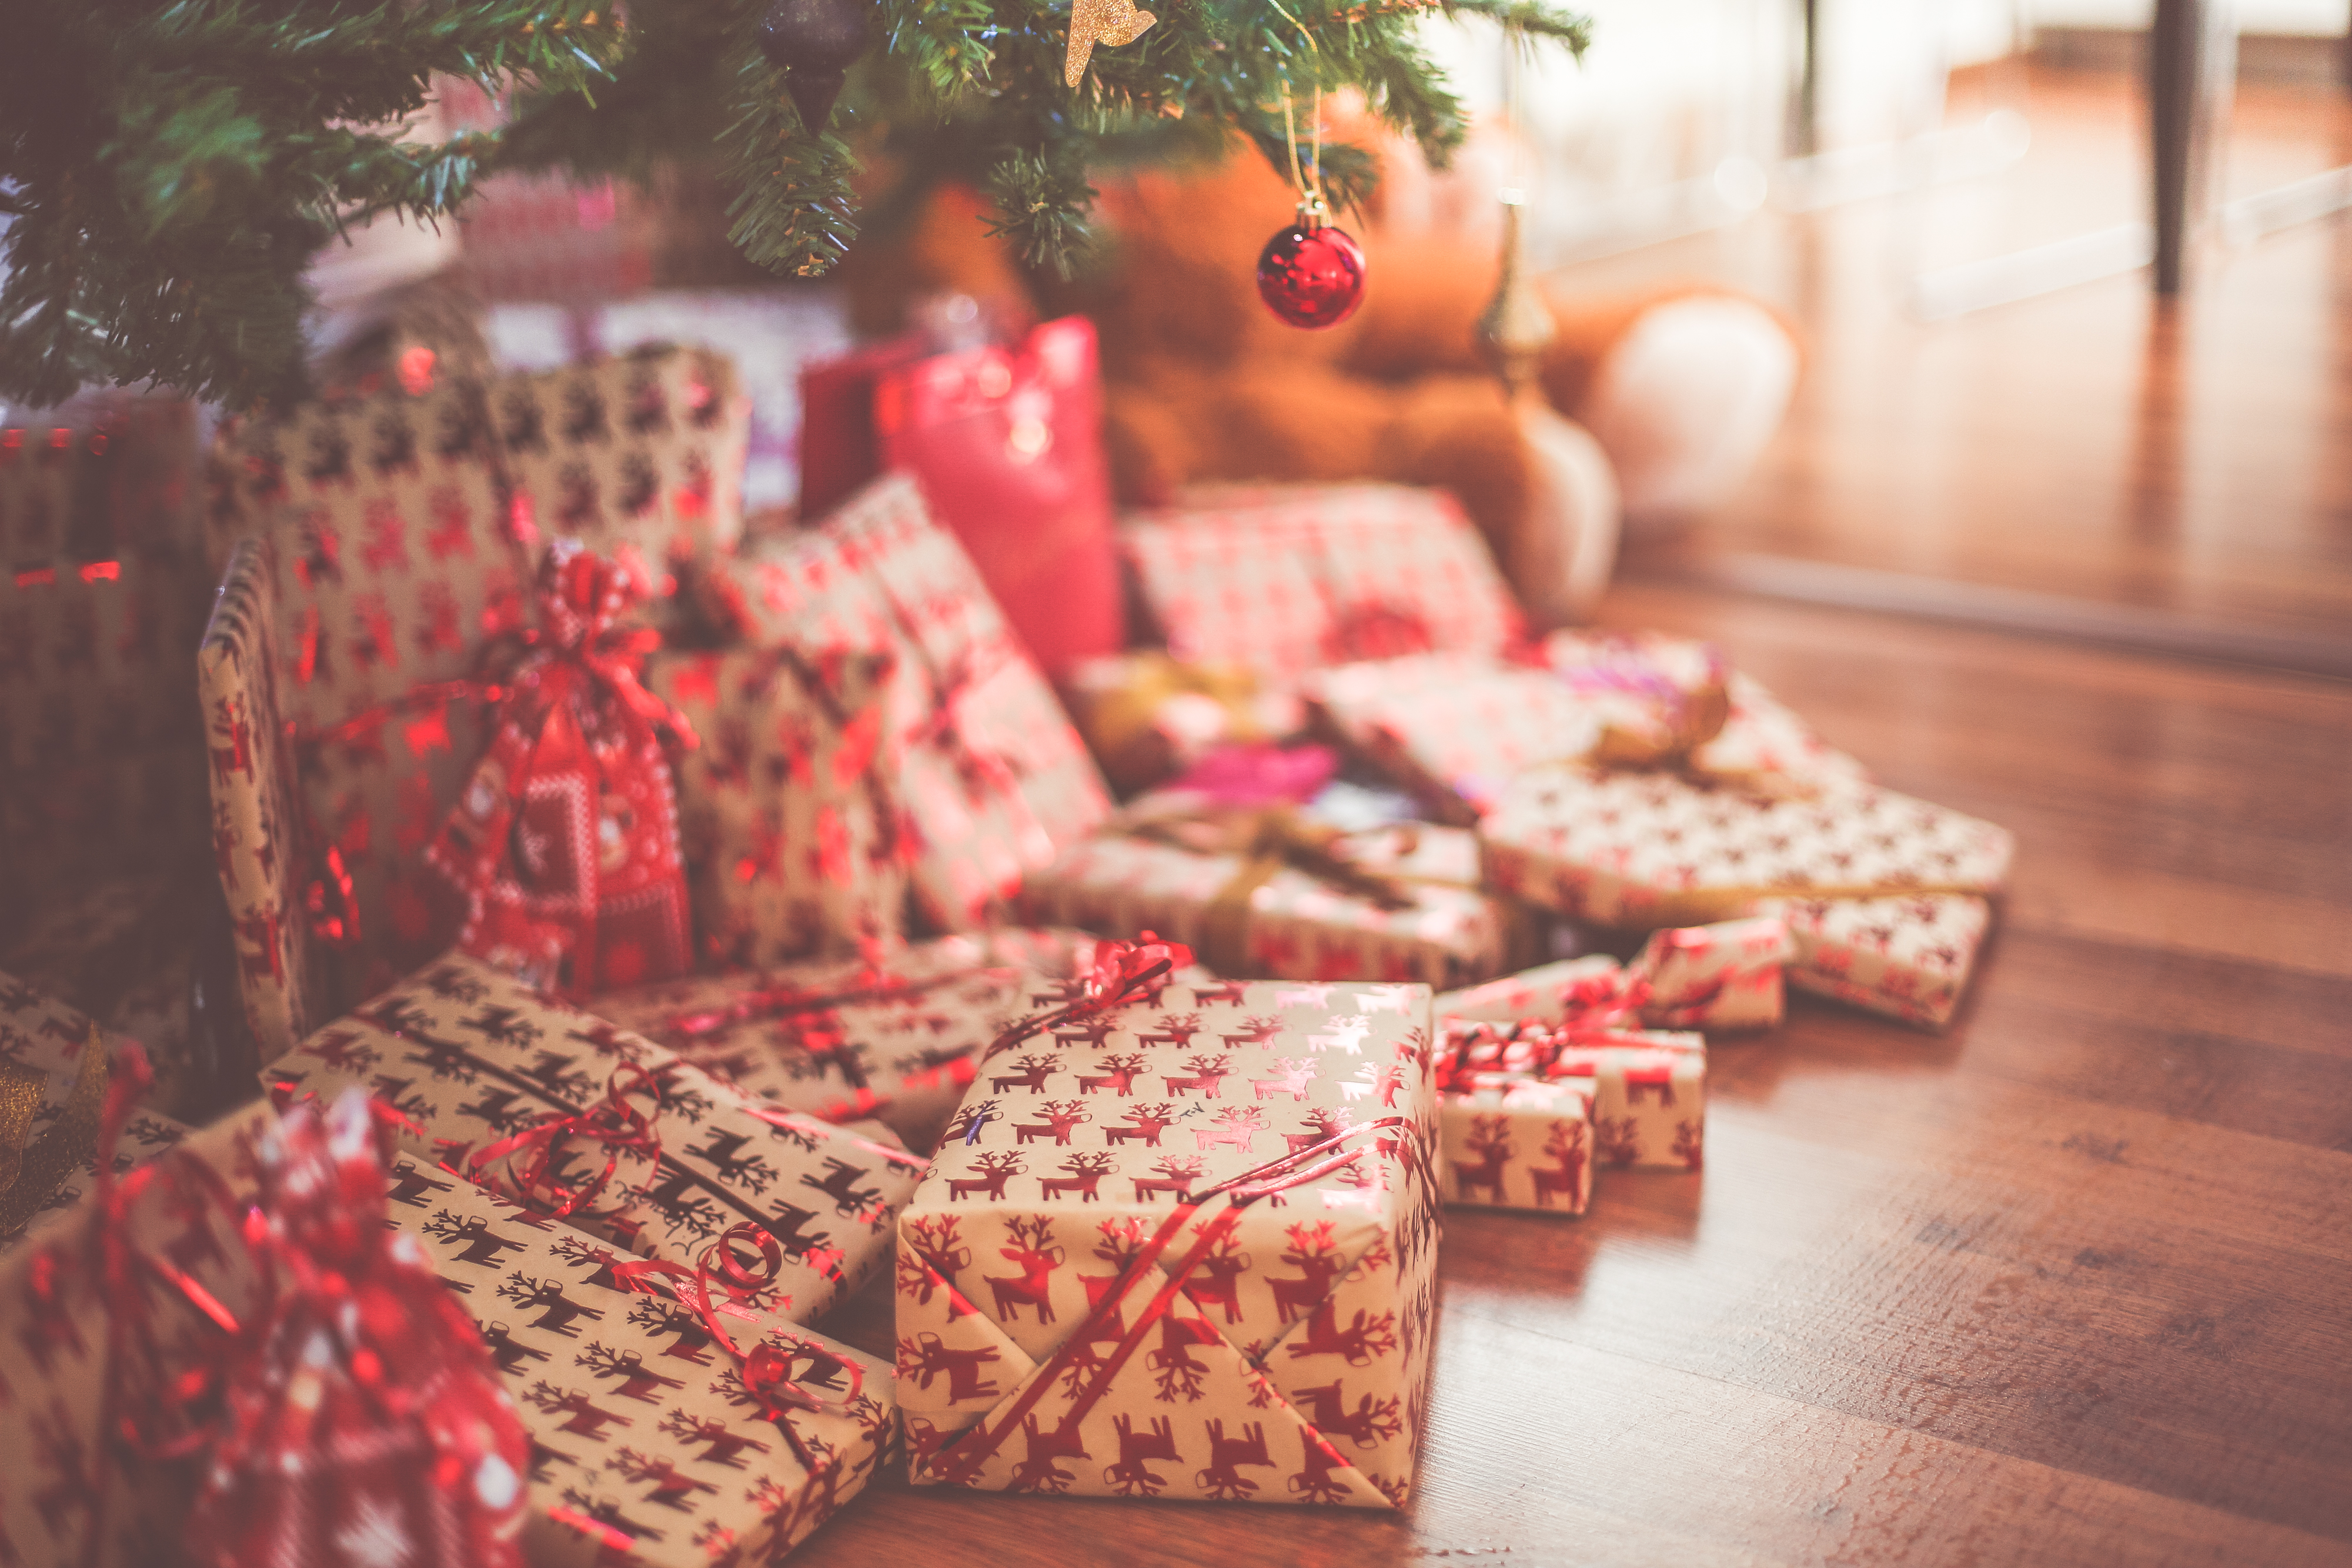 Holidays: A Publisher's Guide to Preparing